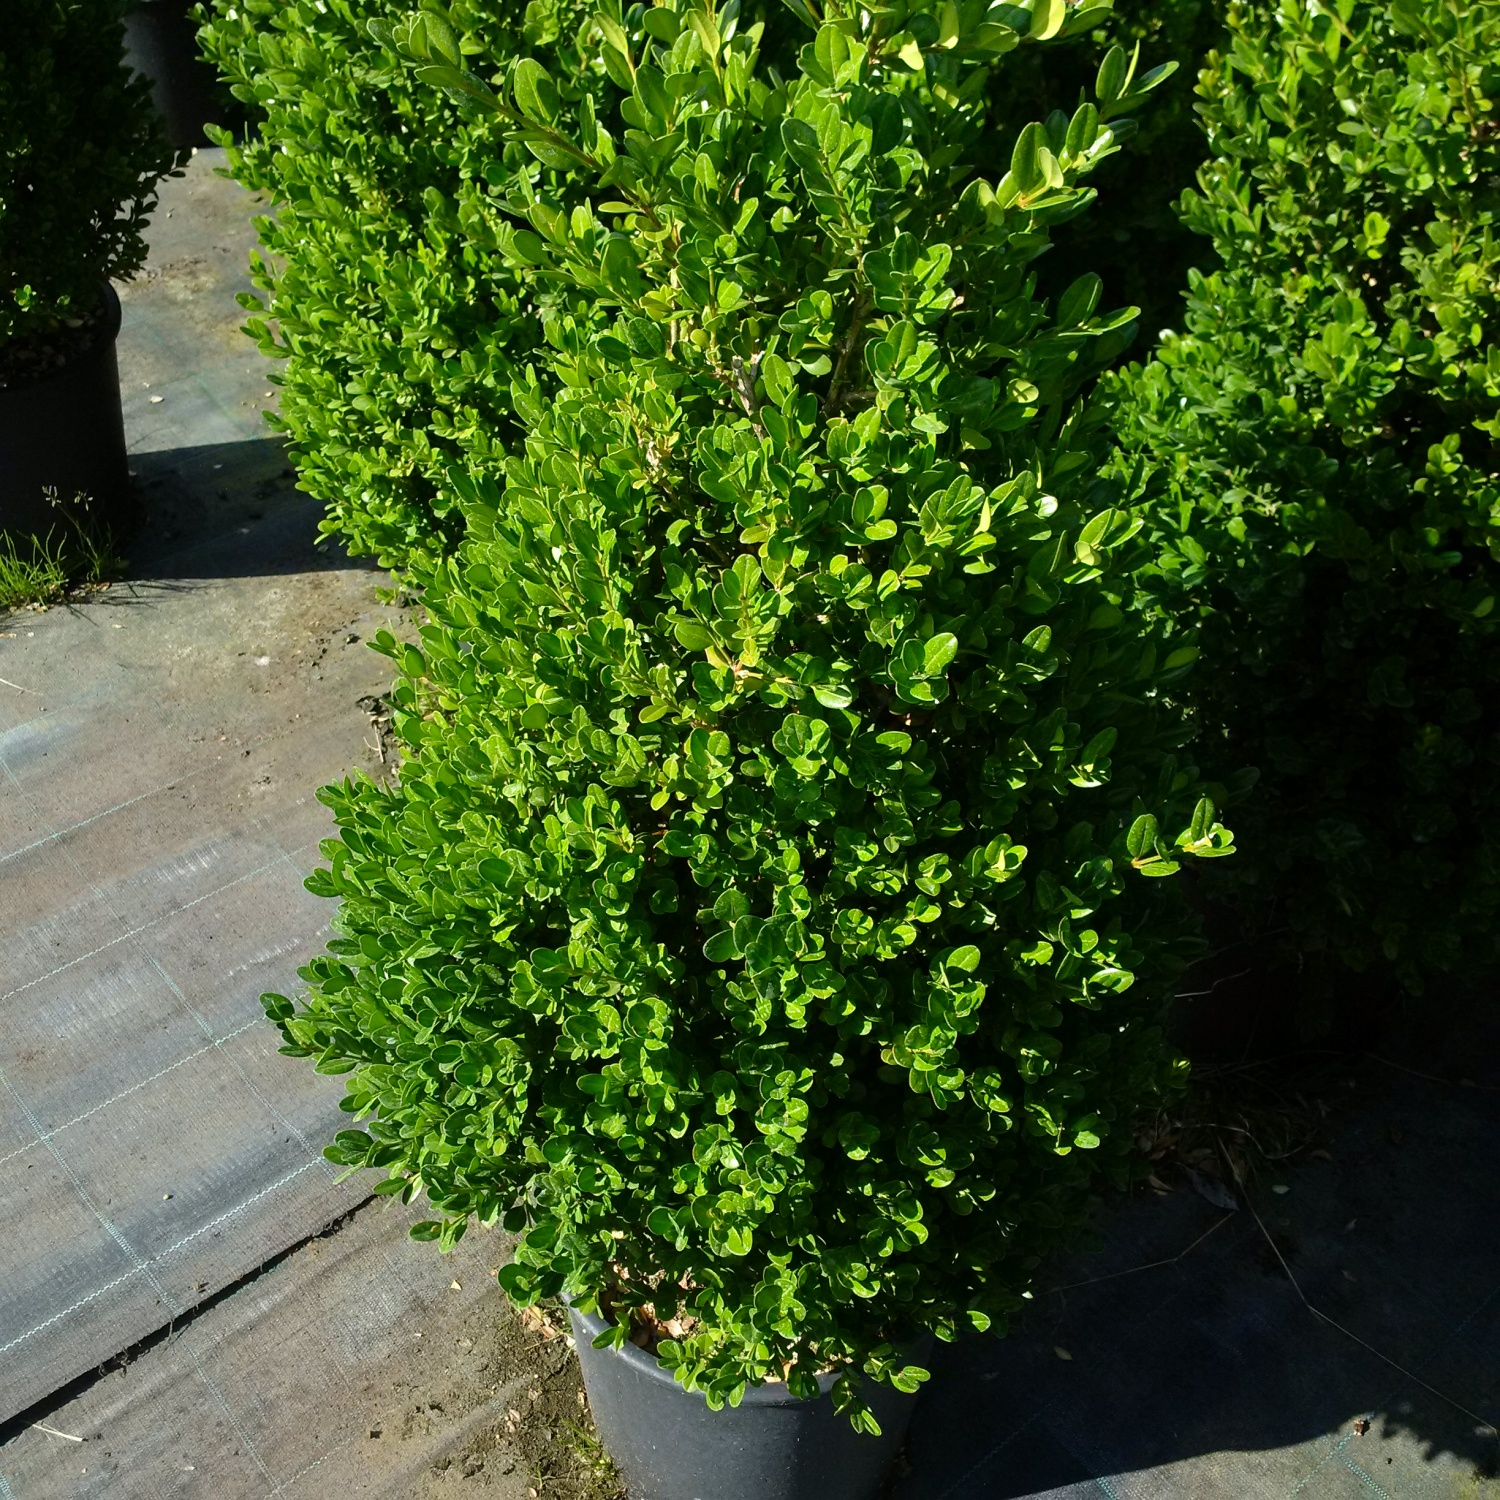 850dab9821 Expoplant - Acquista online: Buxus microphylla Faulkner - Bosso 'Faulkner'